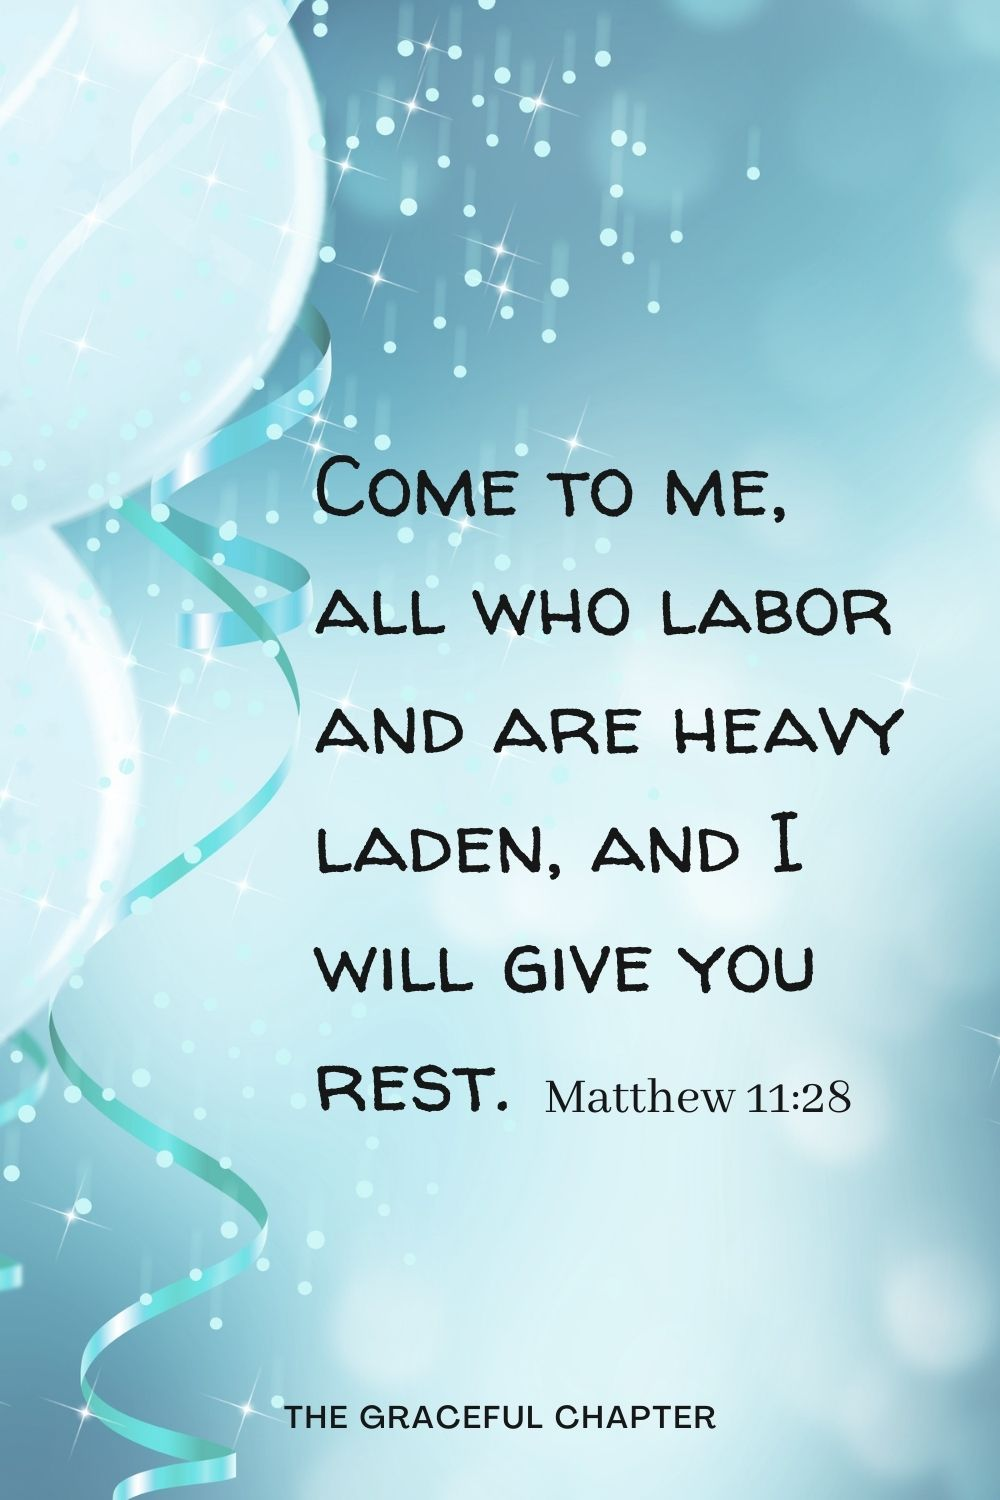 Come to me, all who labor and are heavy laden, and I will give you rest. Matthew 11:28